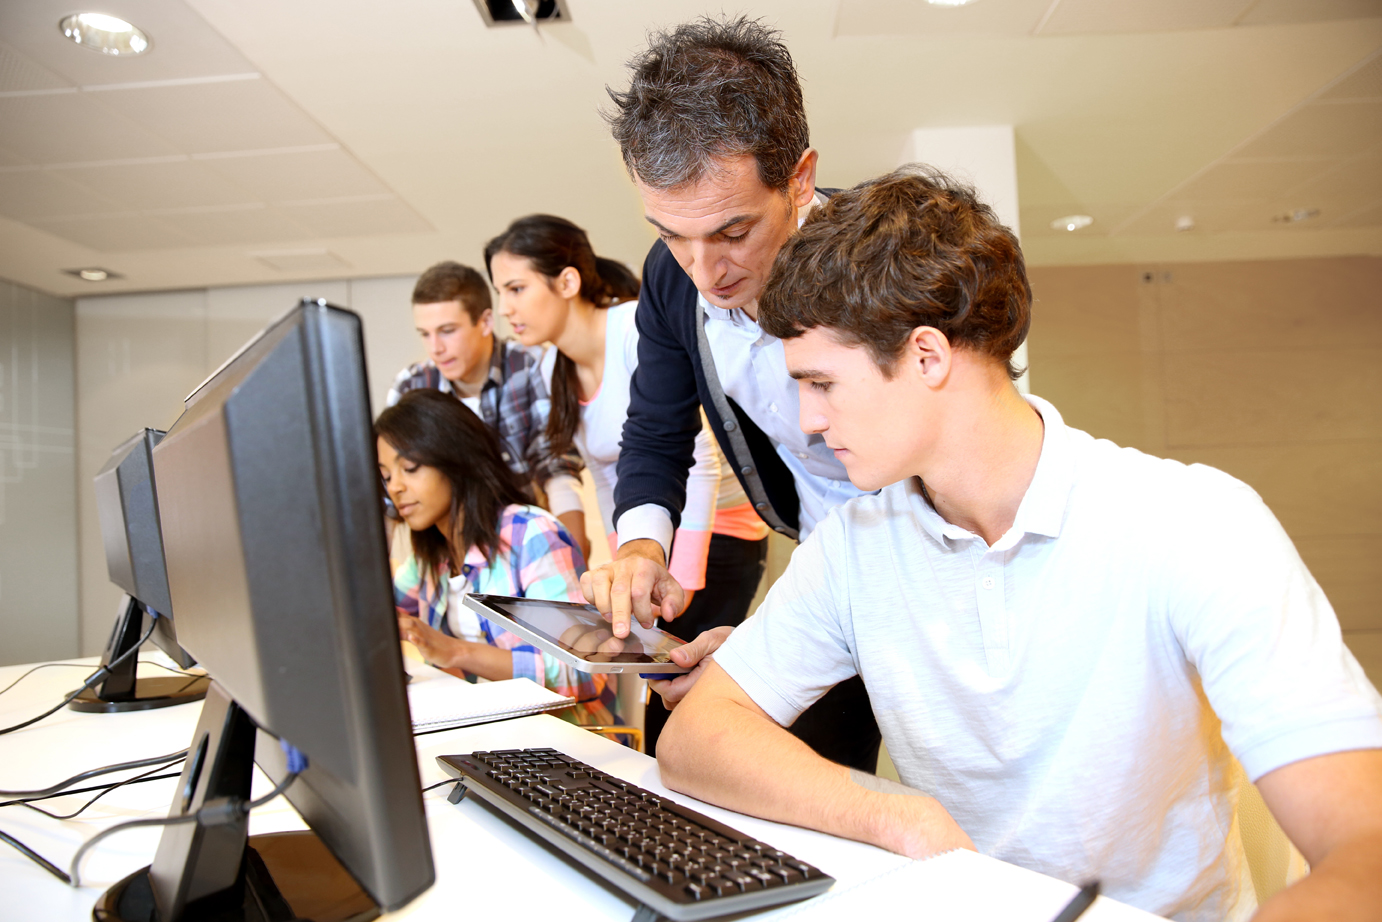 LR-bigstock-Adult-man-helping-student-in-c-41142097